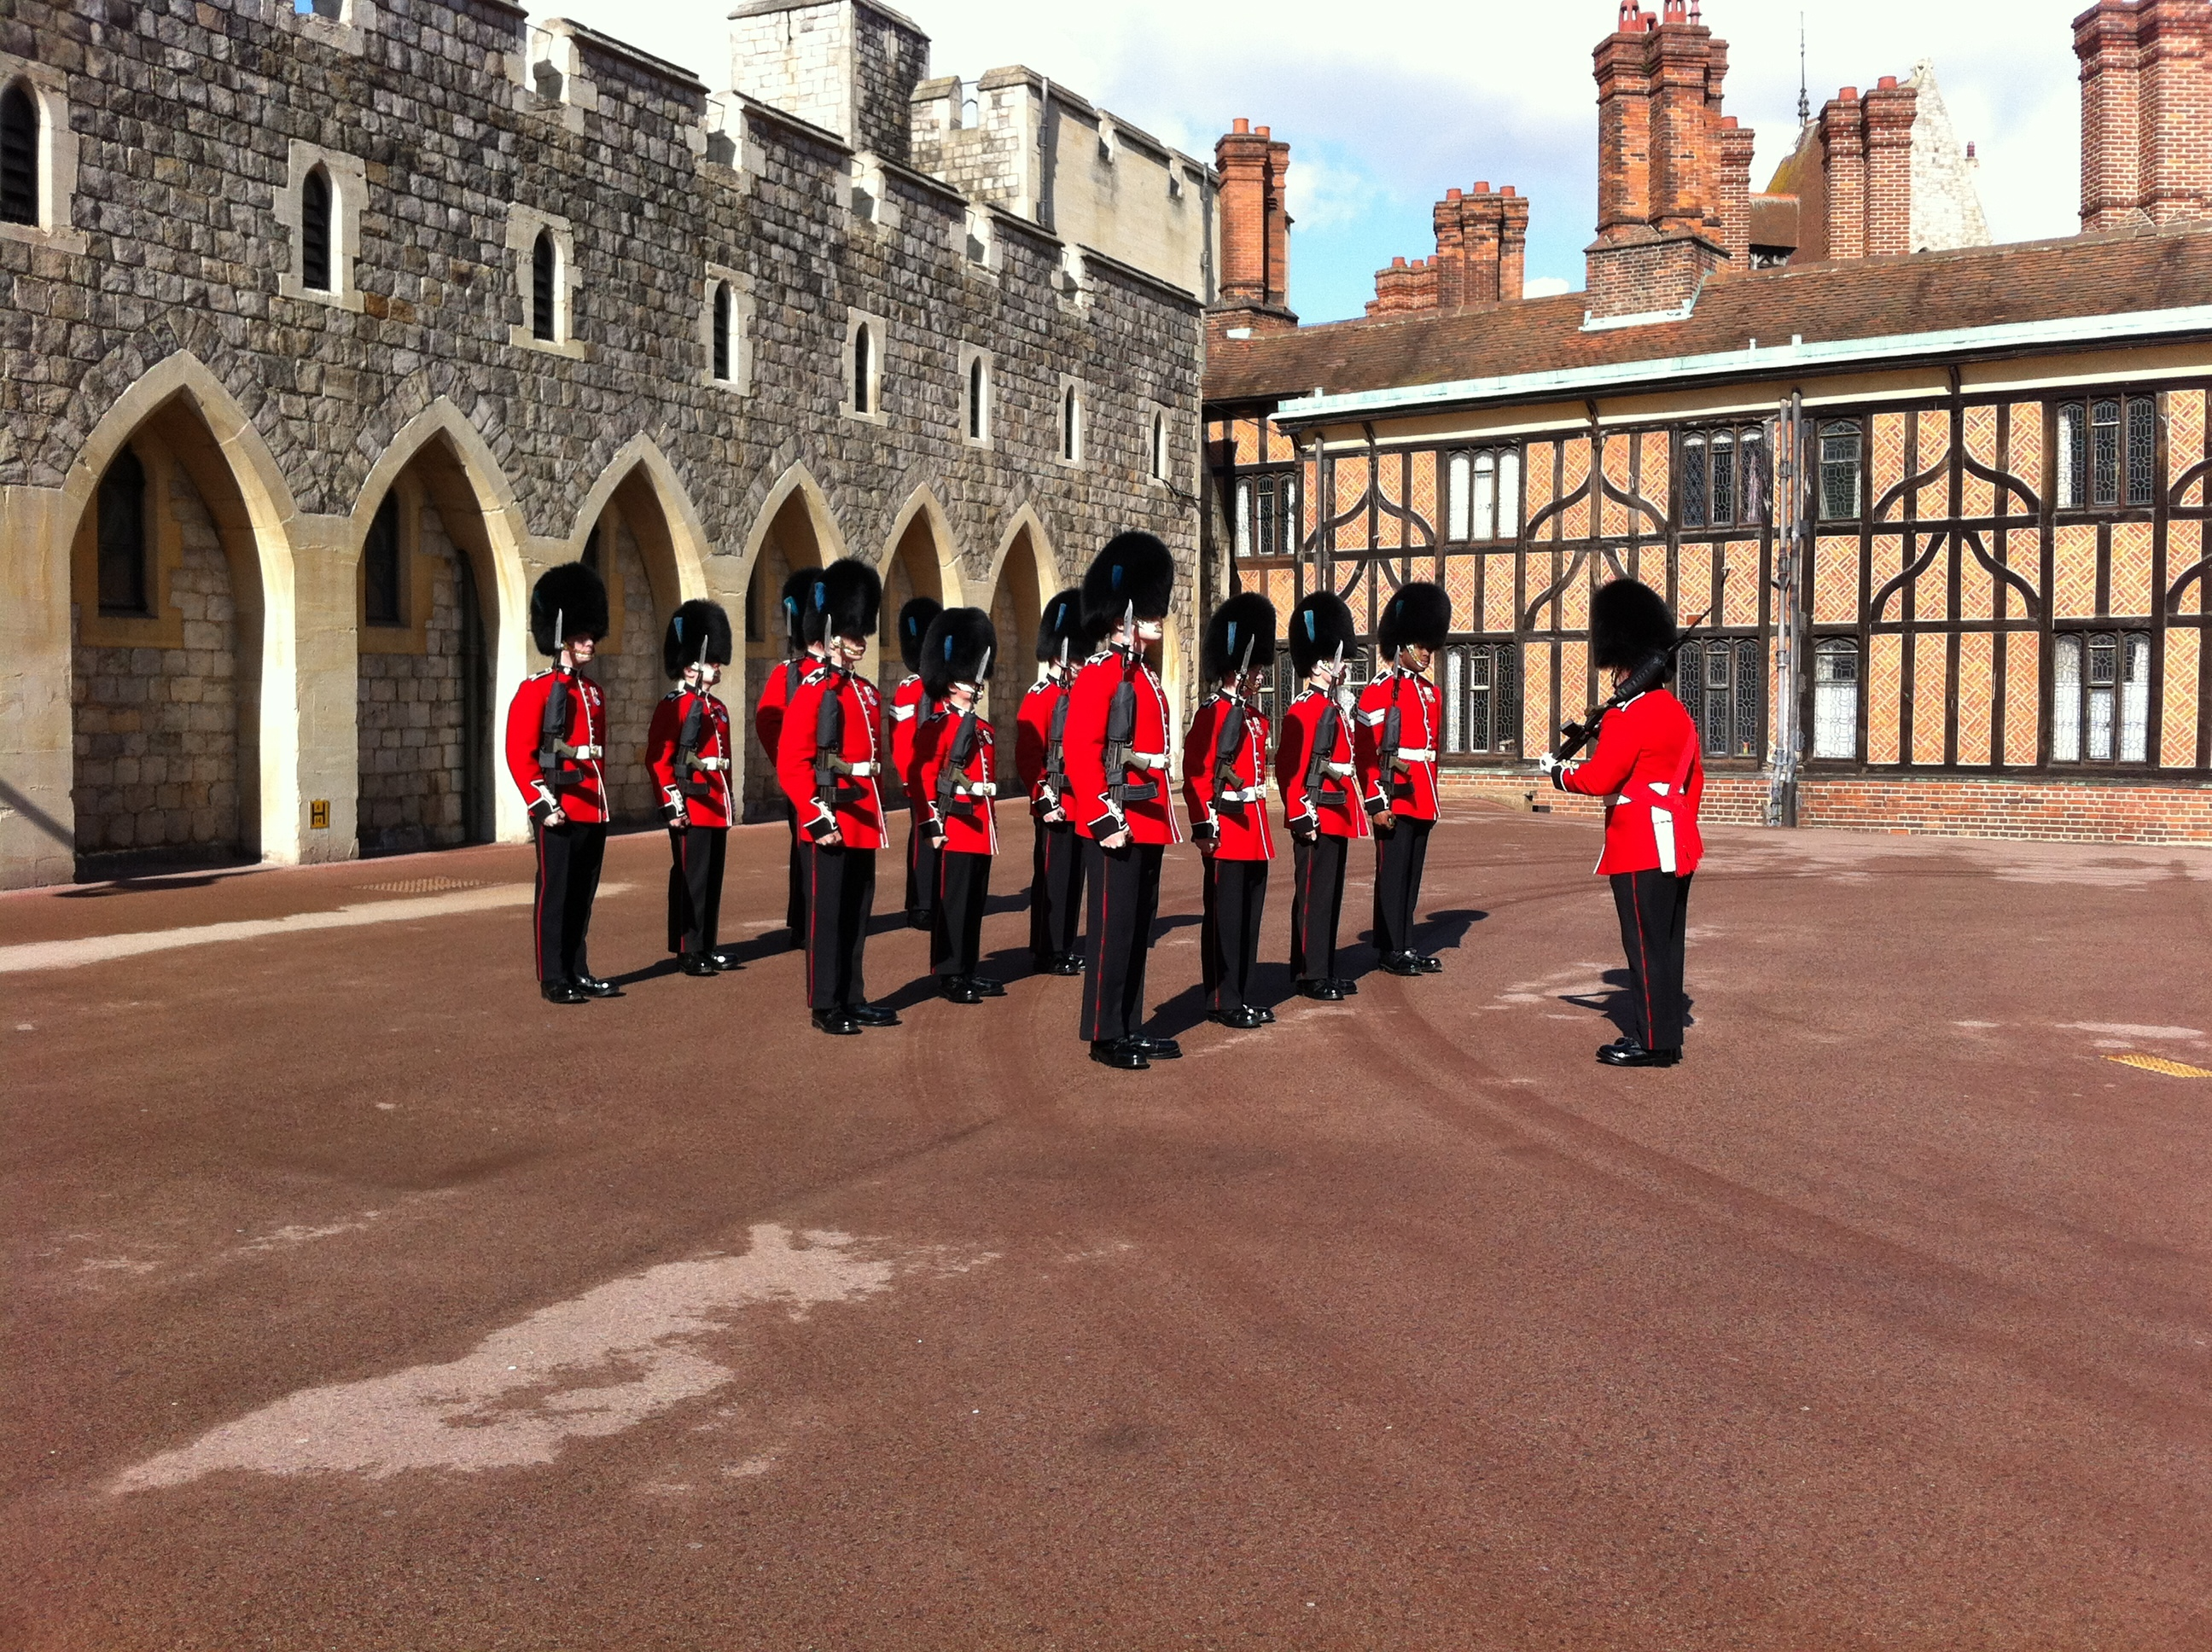 Getting ready to Change thre Guard at Windsor